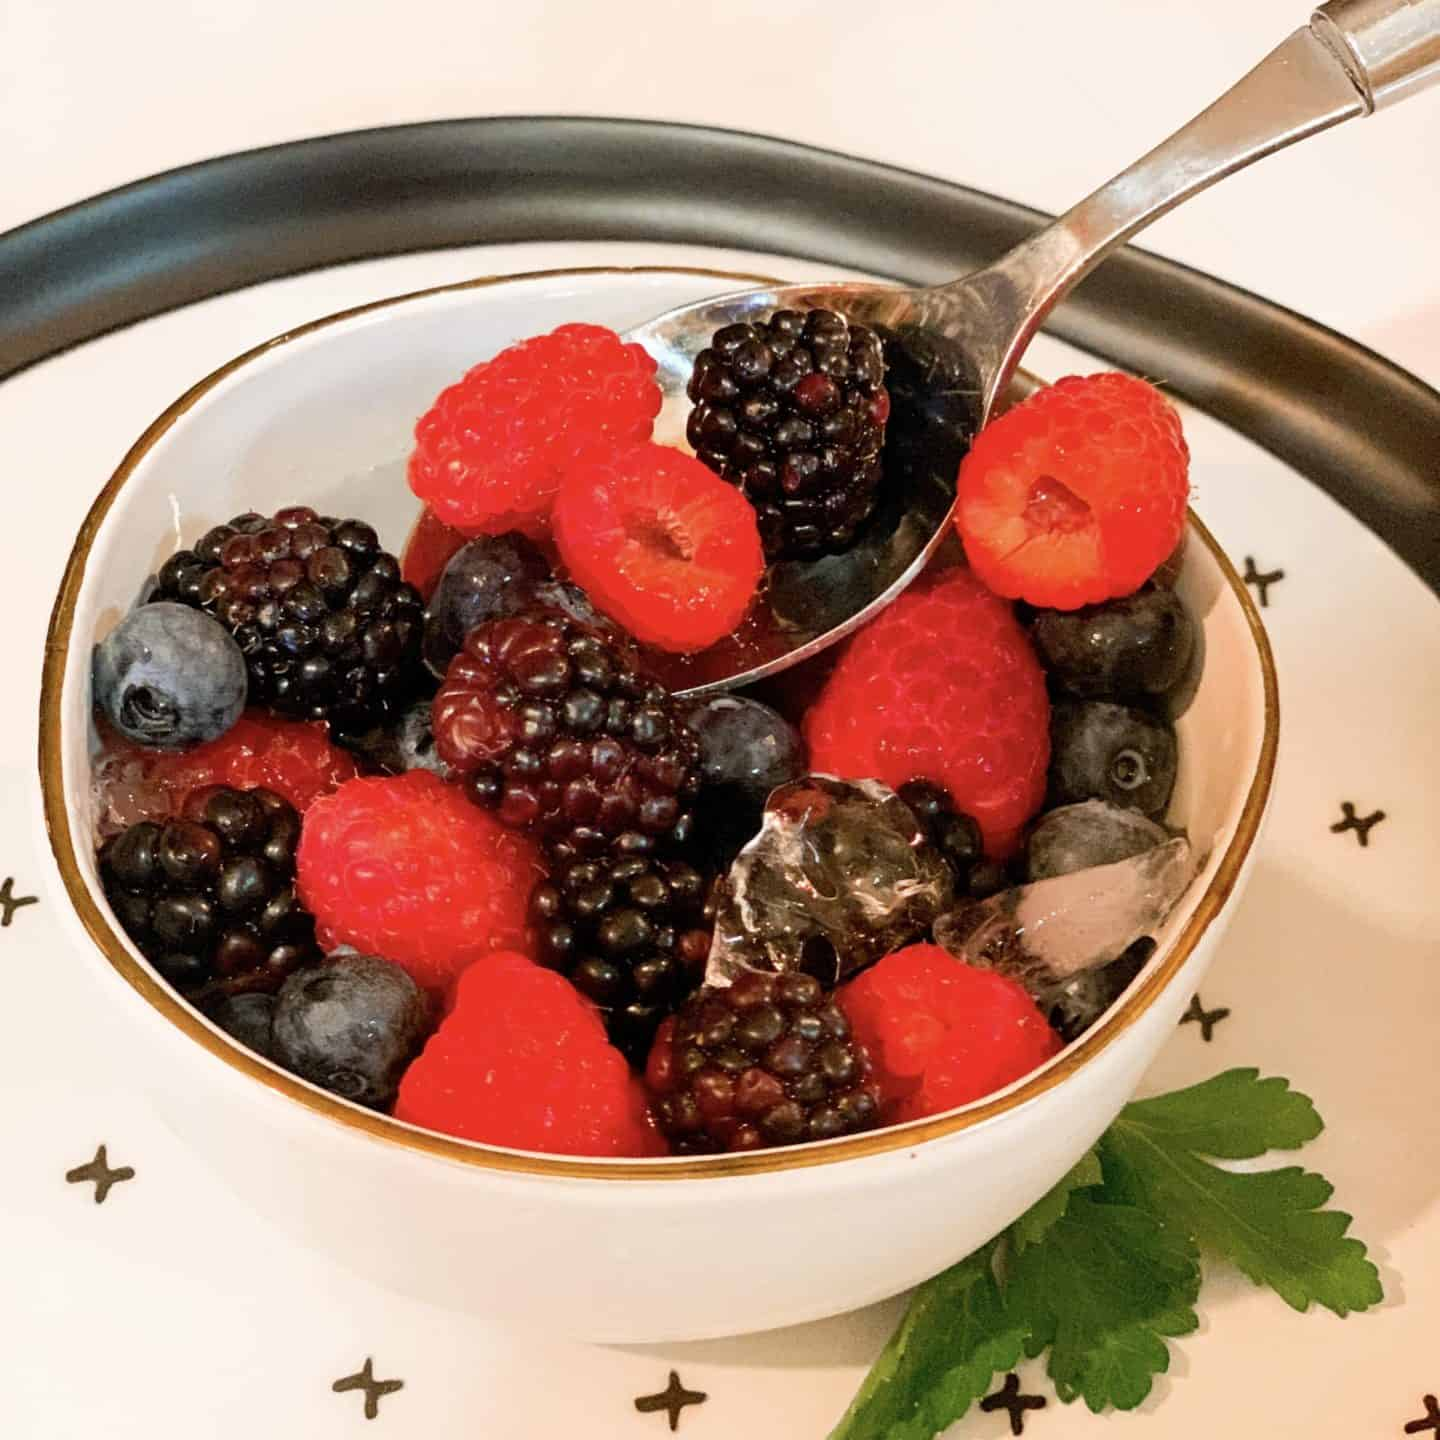 TikTok Nature's Cereal Vegan Recipe Mixed Berries In A Bowl Of Coconut Water With Ice